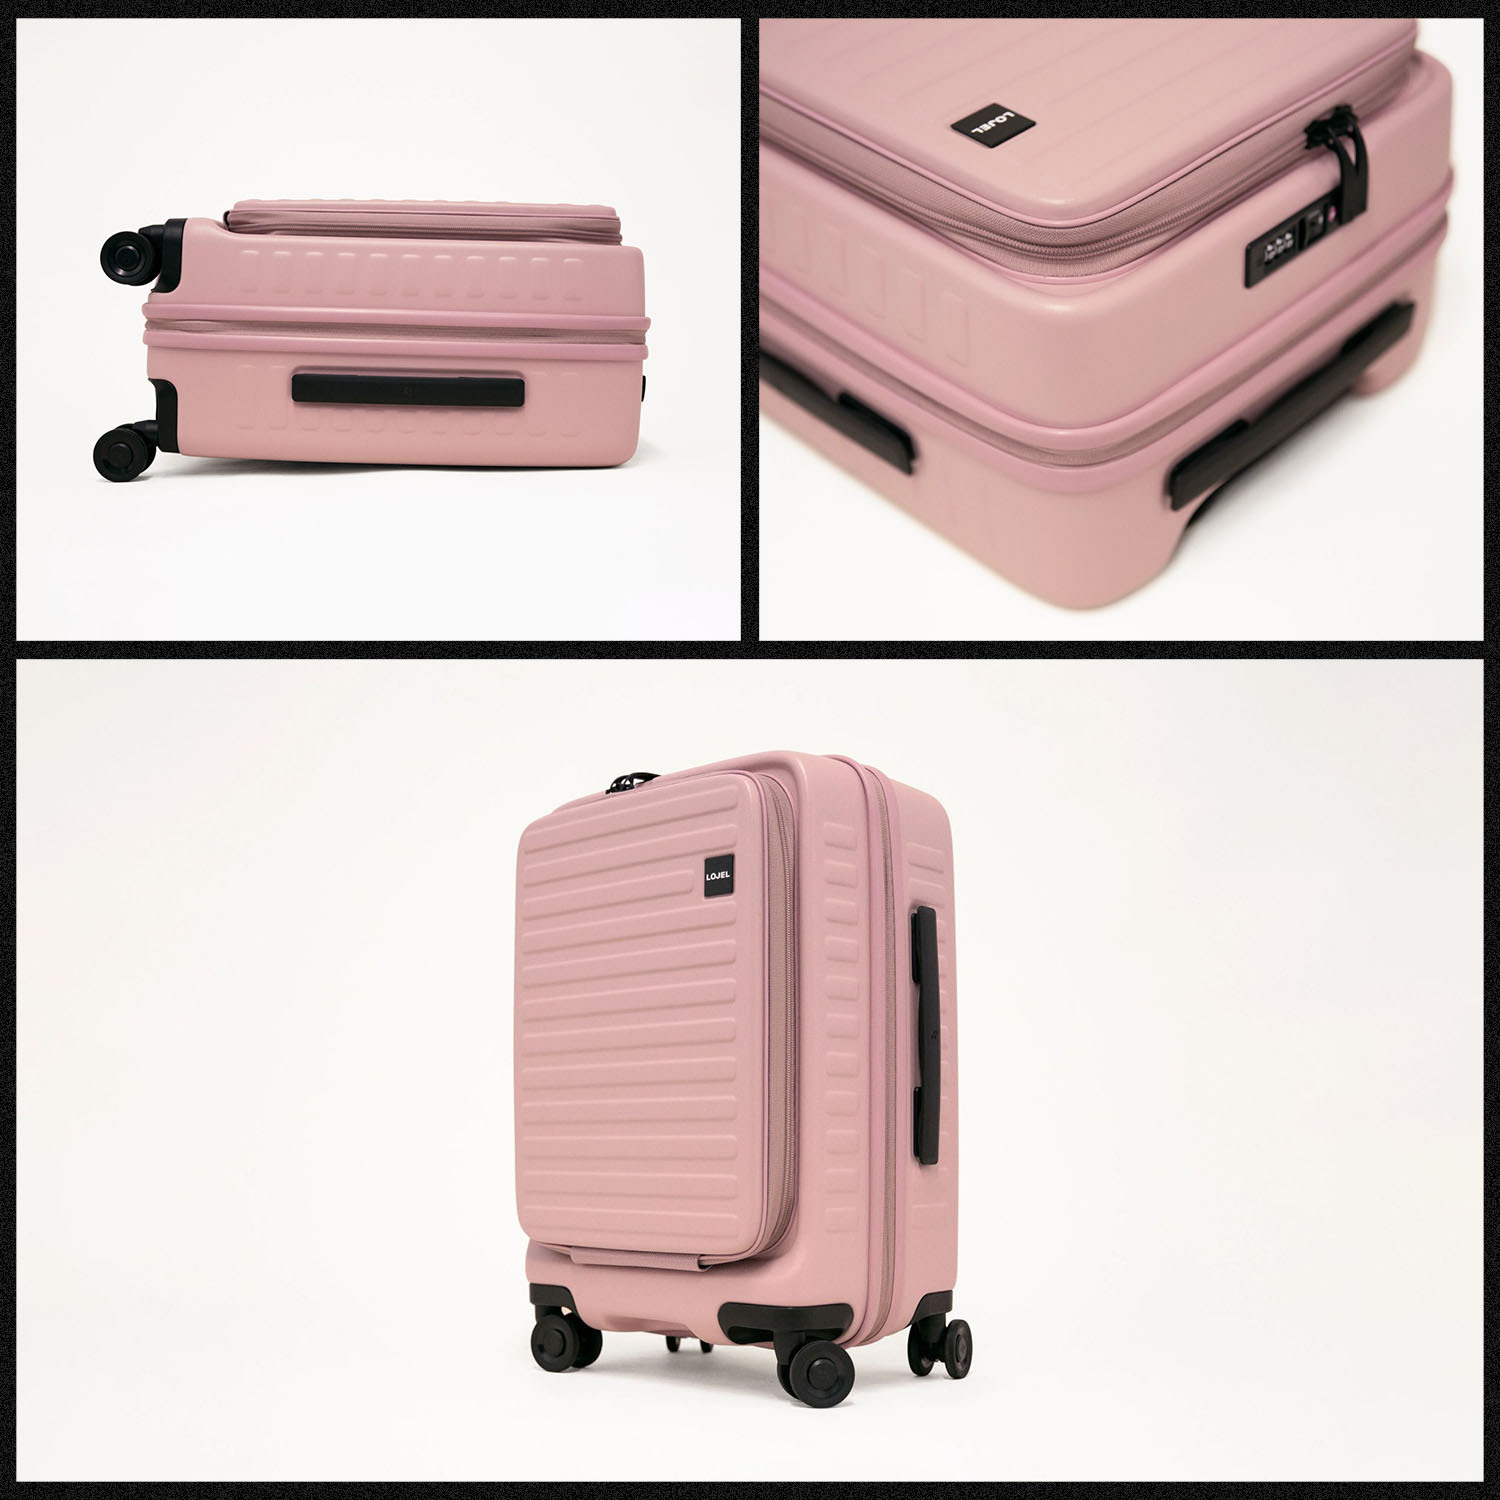 The Lojel Cubo Small Case